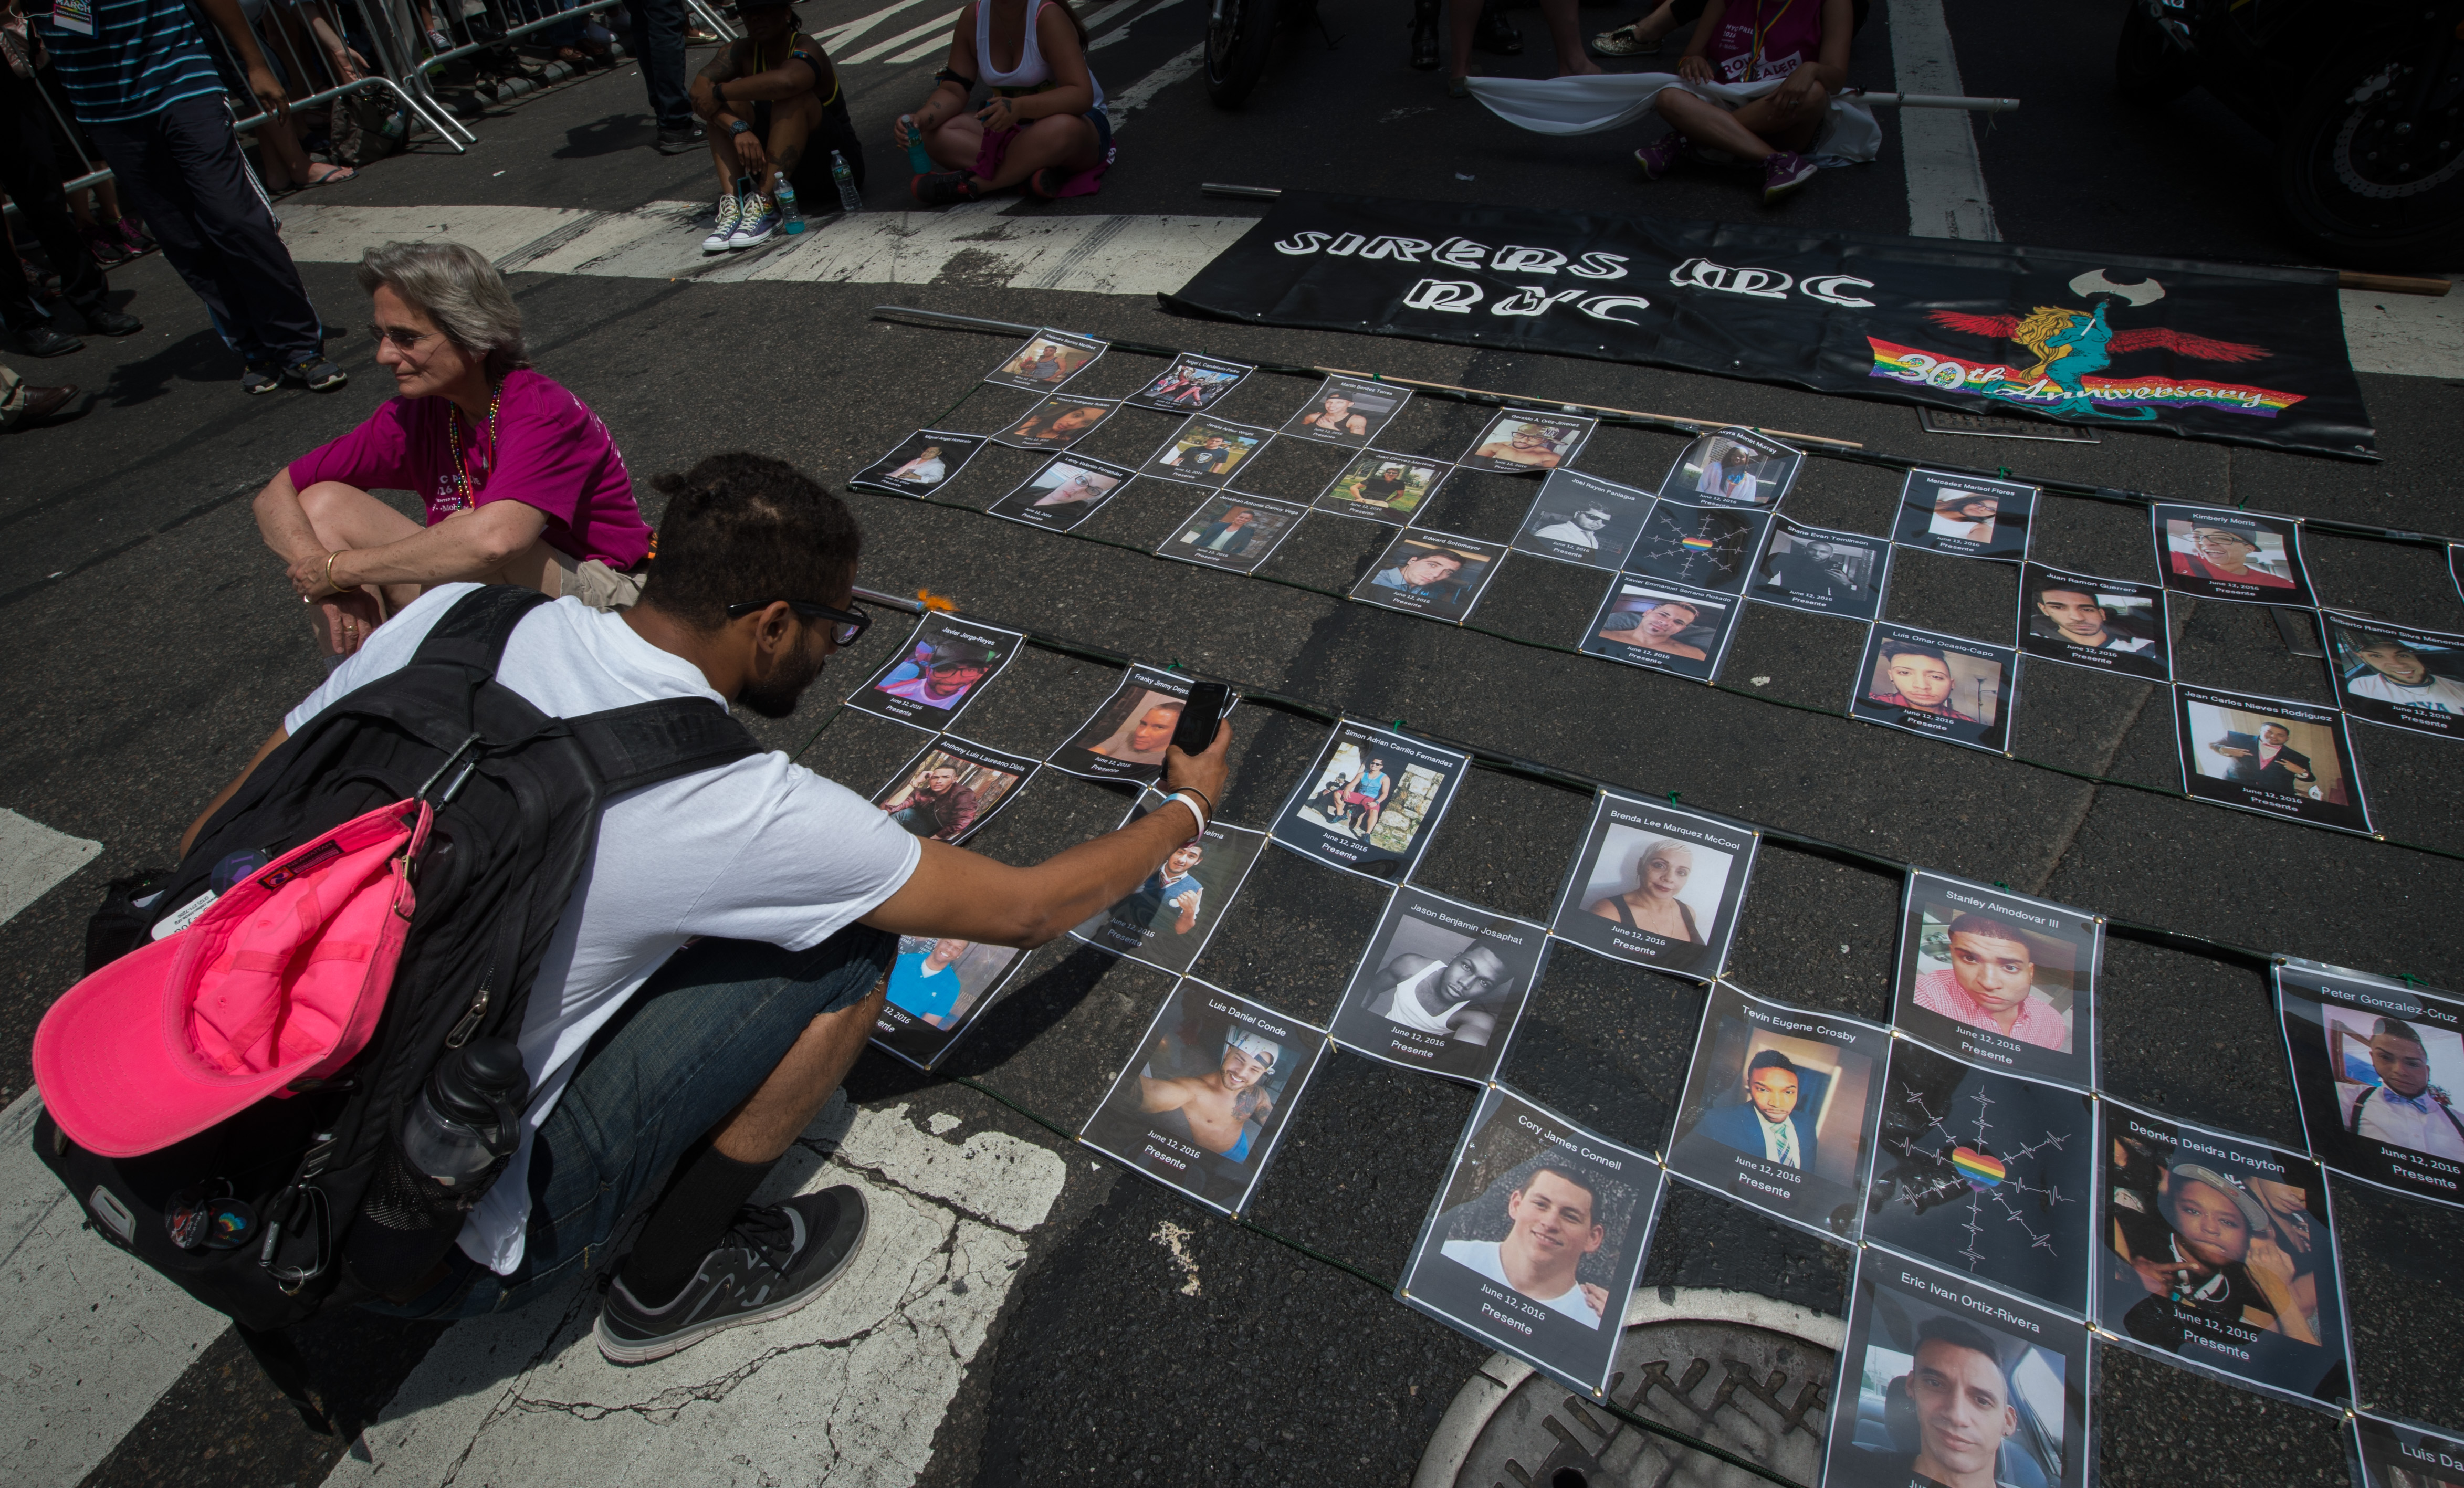 Photographs of the victims of the Orlando Pulse nightclub shooting are laid out prior to the start of the 46th annual gay-pride march in New York City on June 26, 2016